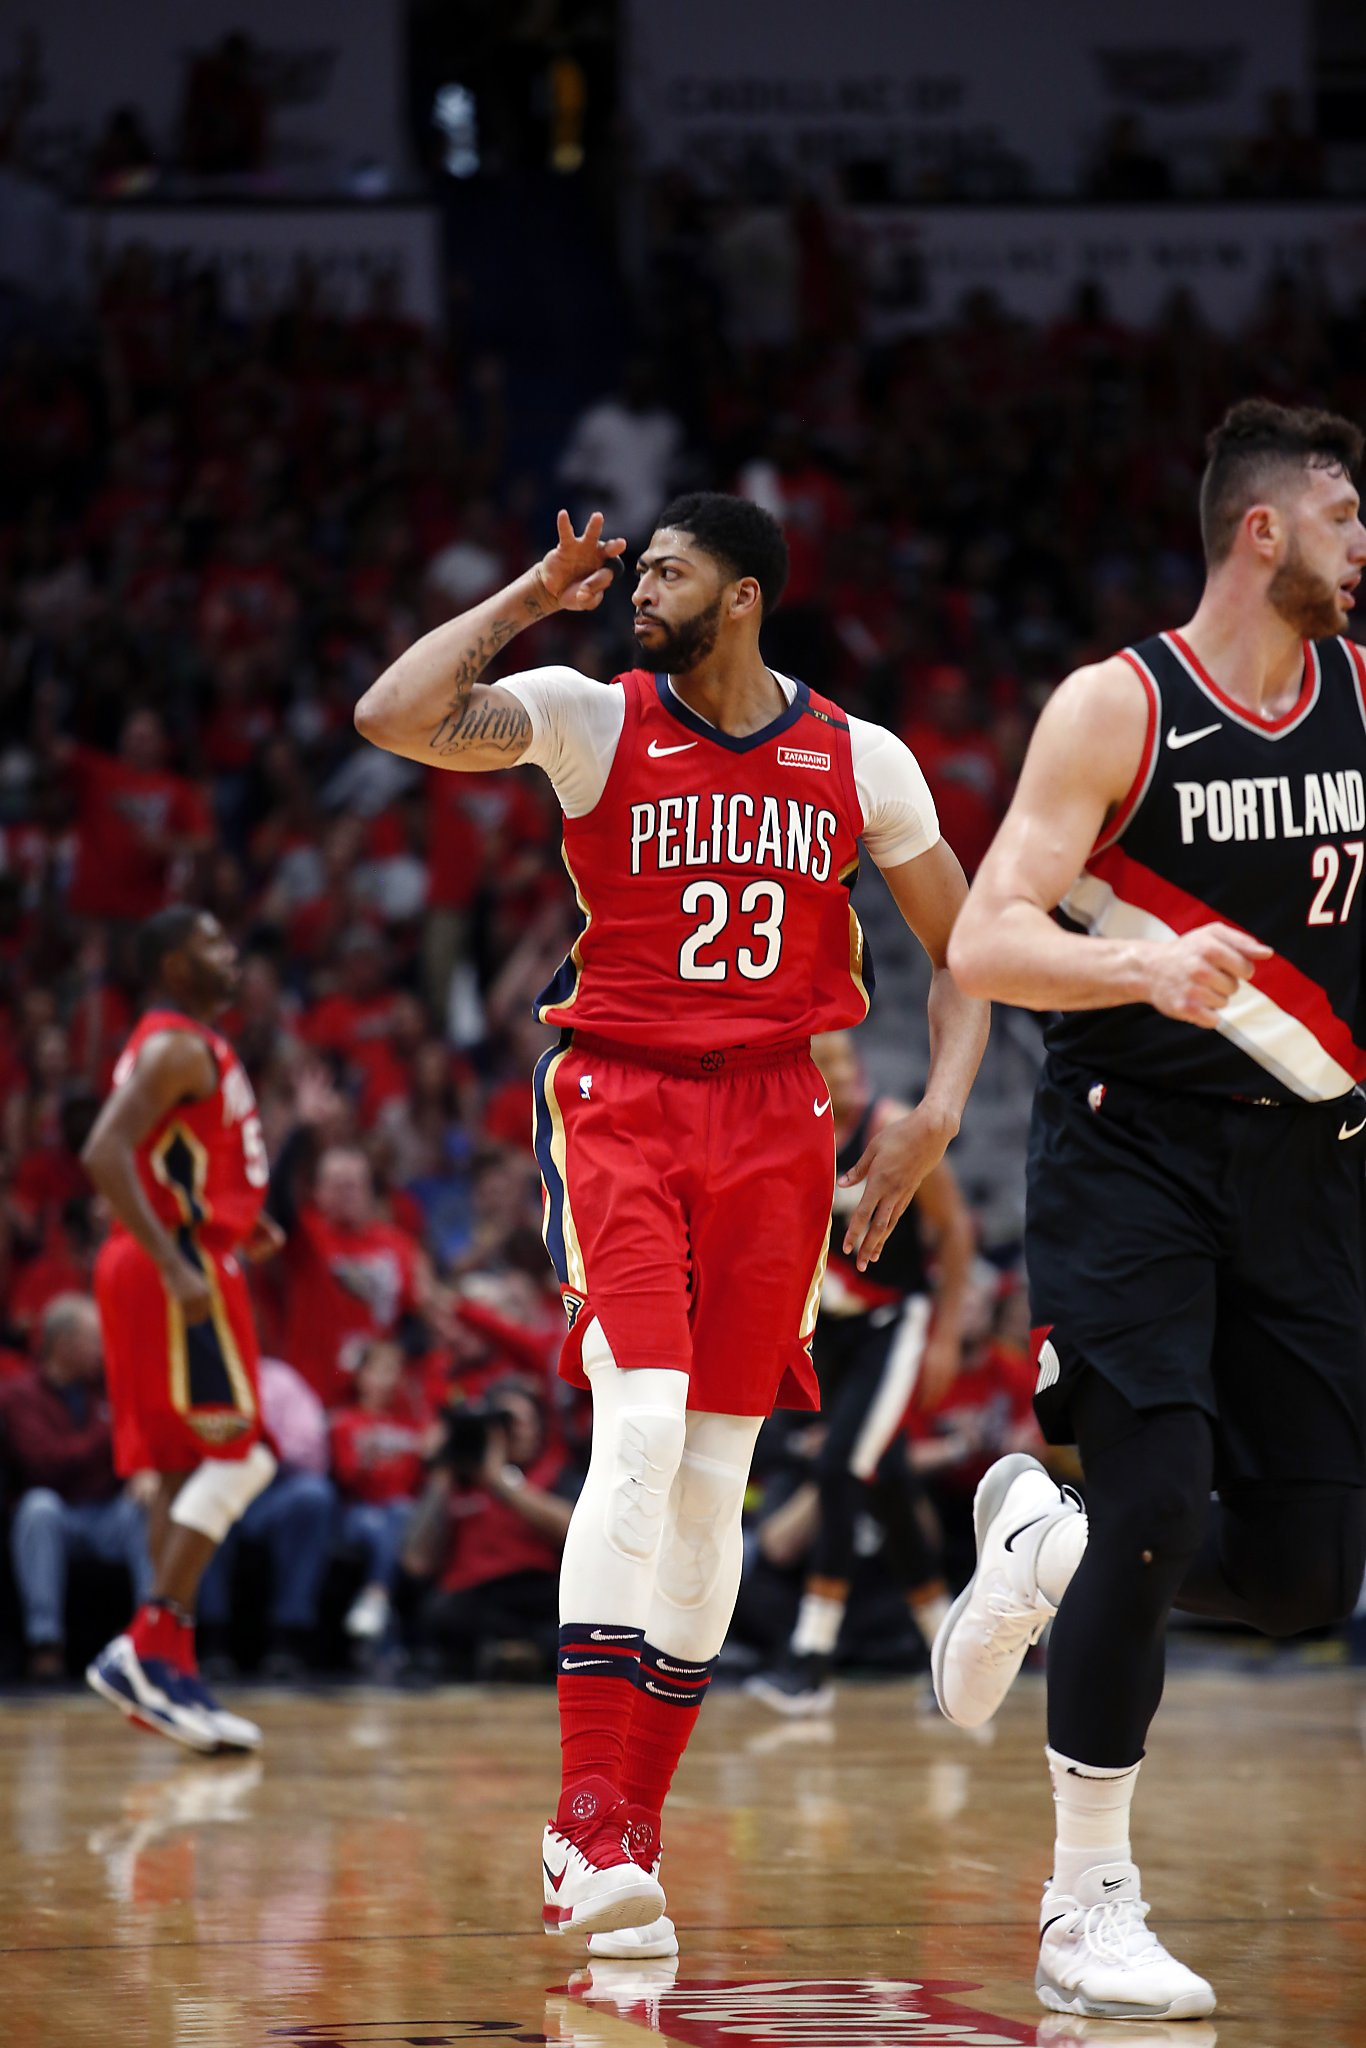 46f30892d43 Anthony Davis scores 47 points to lead Pelicans to sweep of Blazers - SFGate